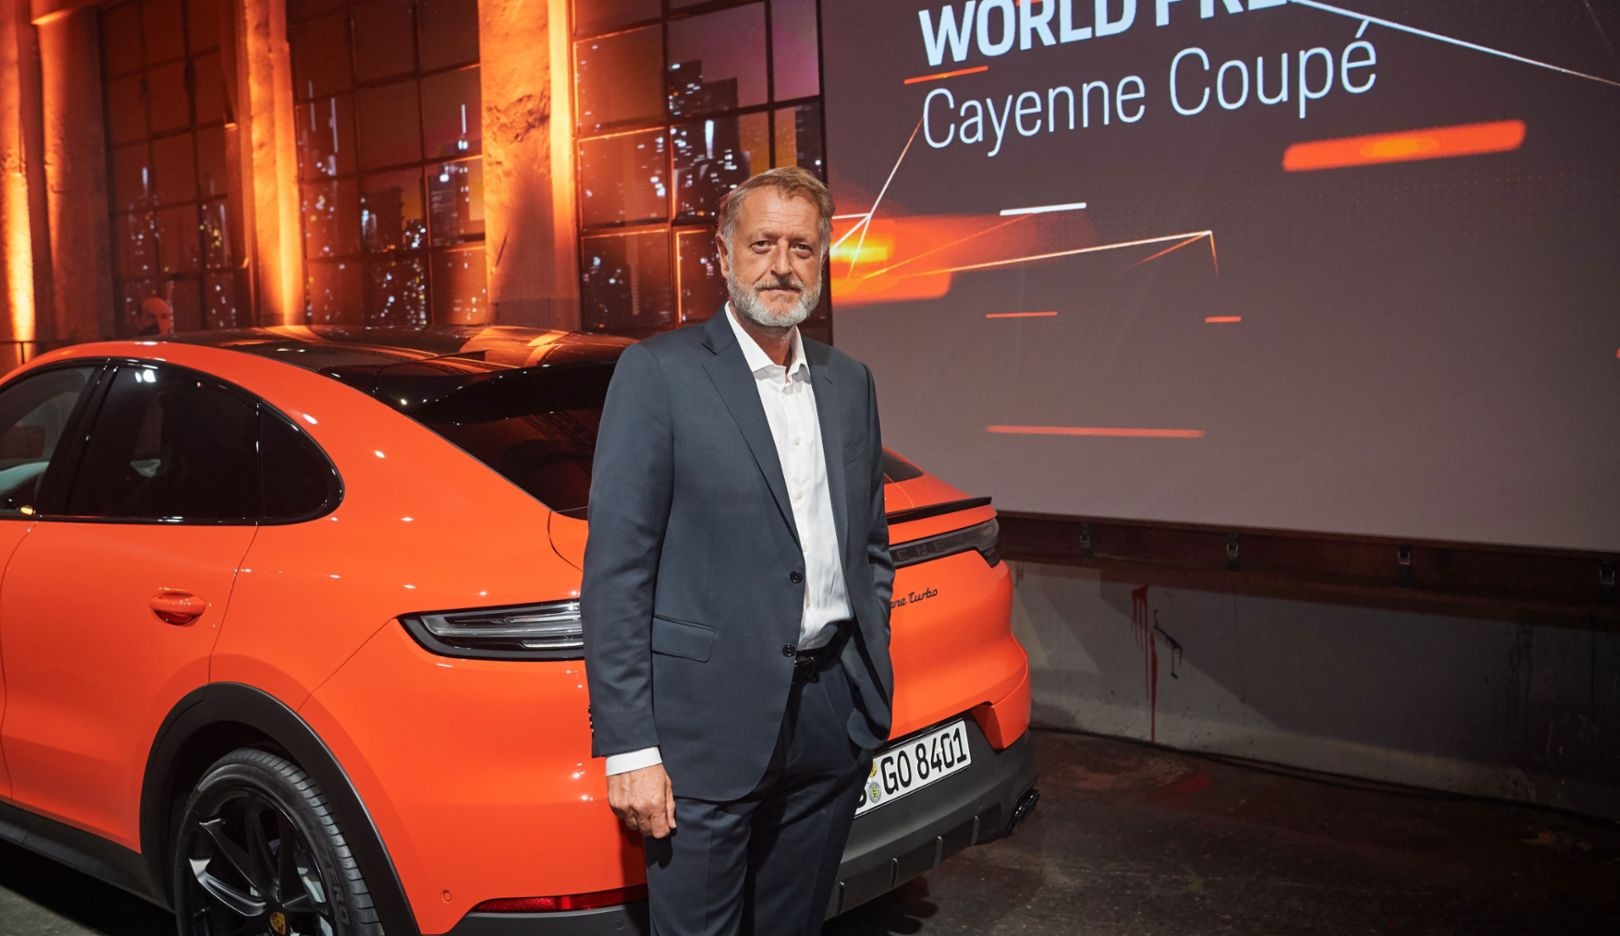 Detlev von Platen, Member of the Executive Board, Sales and Marketing, World premiere of the new Porsche Cayenne Coupé, Stuttgart, 2019, Porsche AG